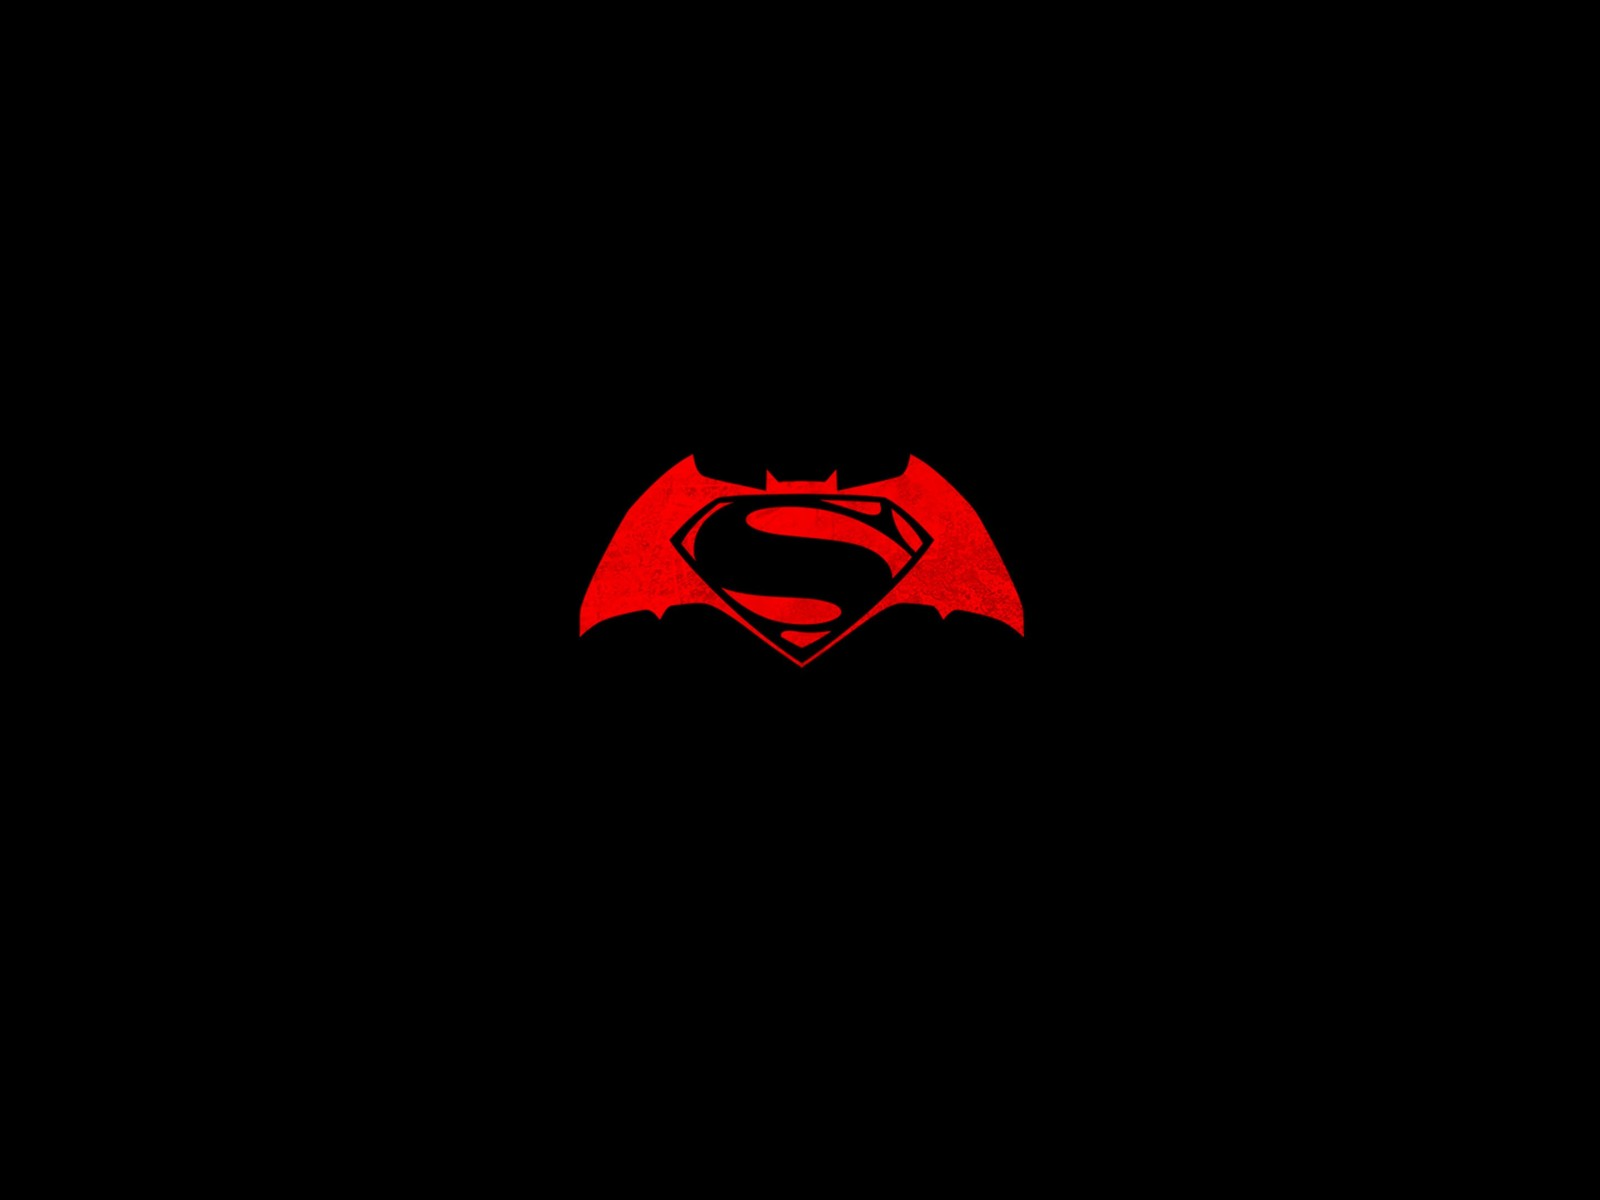 Batman v Superman logo Wallpaper for Desktop 1600x1200